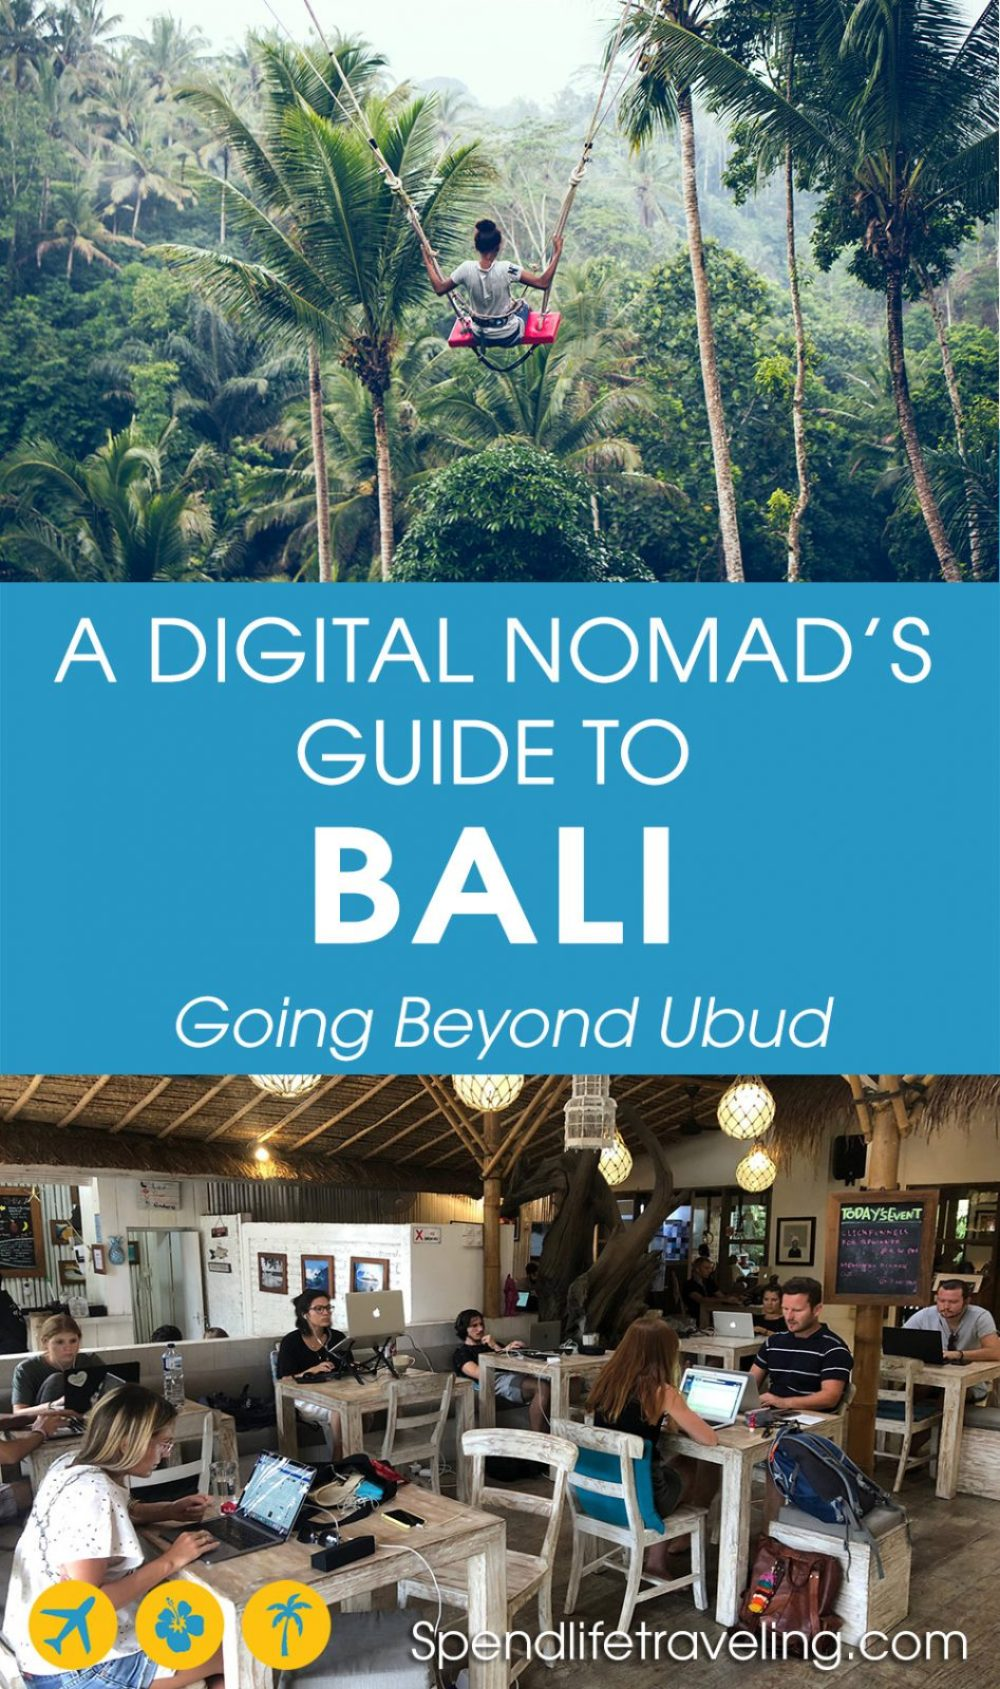 Bali is one of the most popular destinations for digital nomads. Why? Check out this article to learn more about what to do and where to go when traveling to Bali as a digital nomad. #digitalnomad #workremotely #Bali #Indonesia #nomadlife